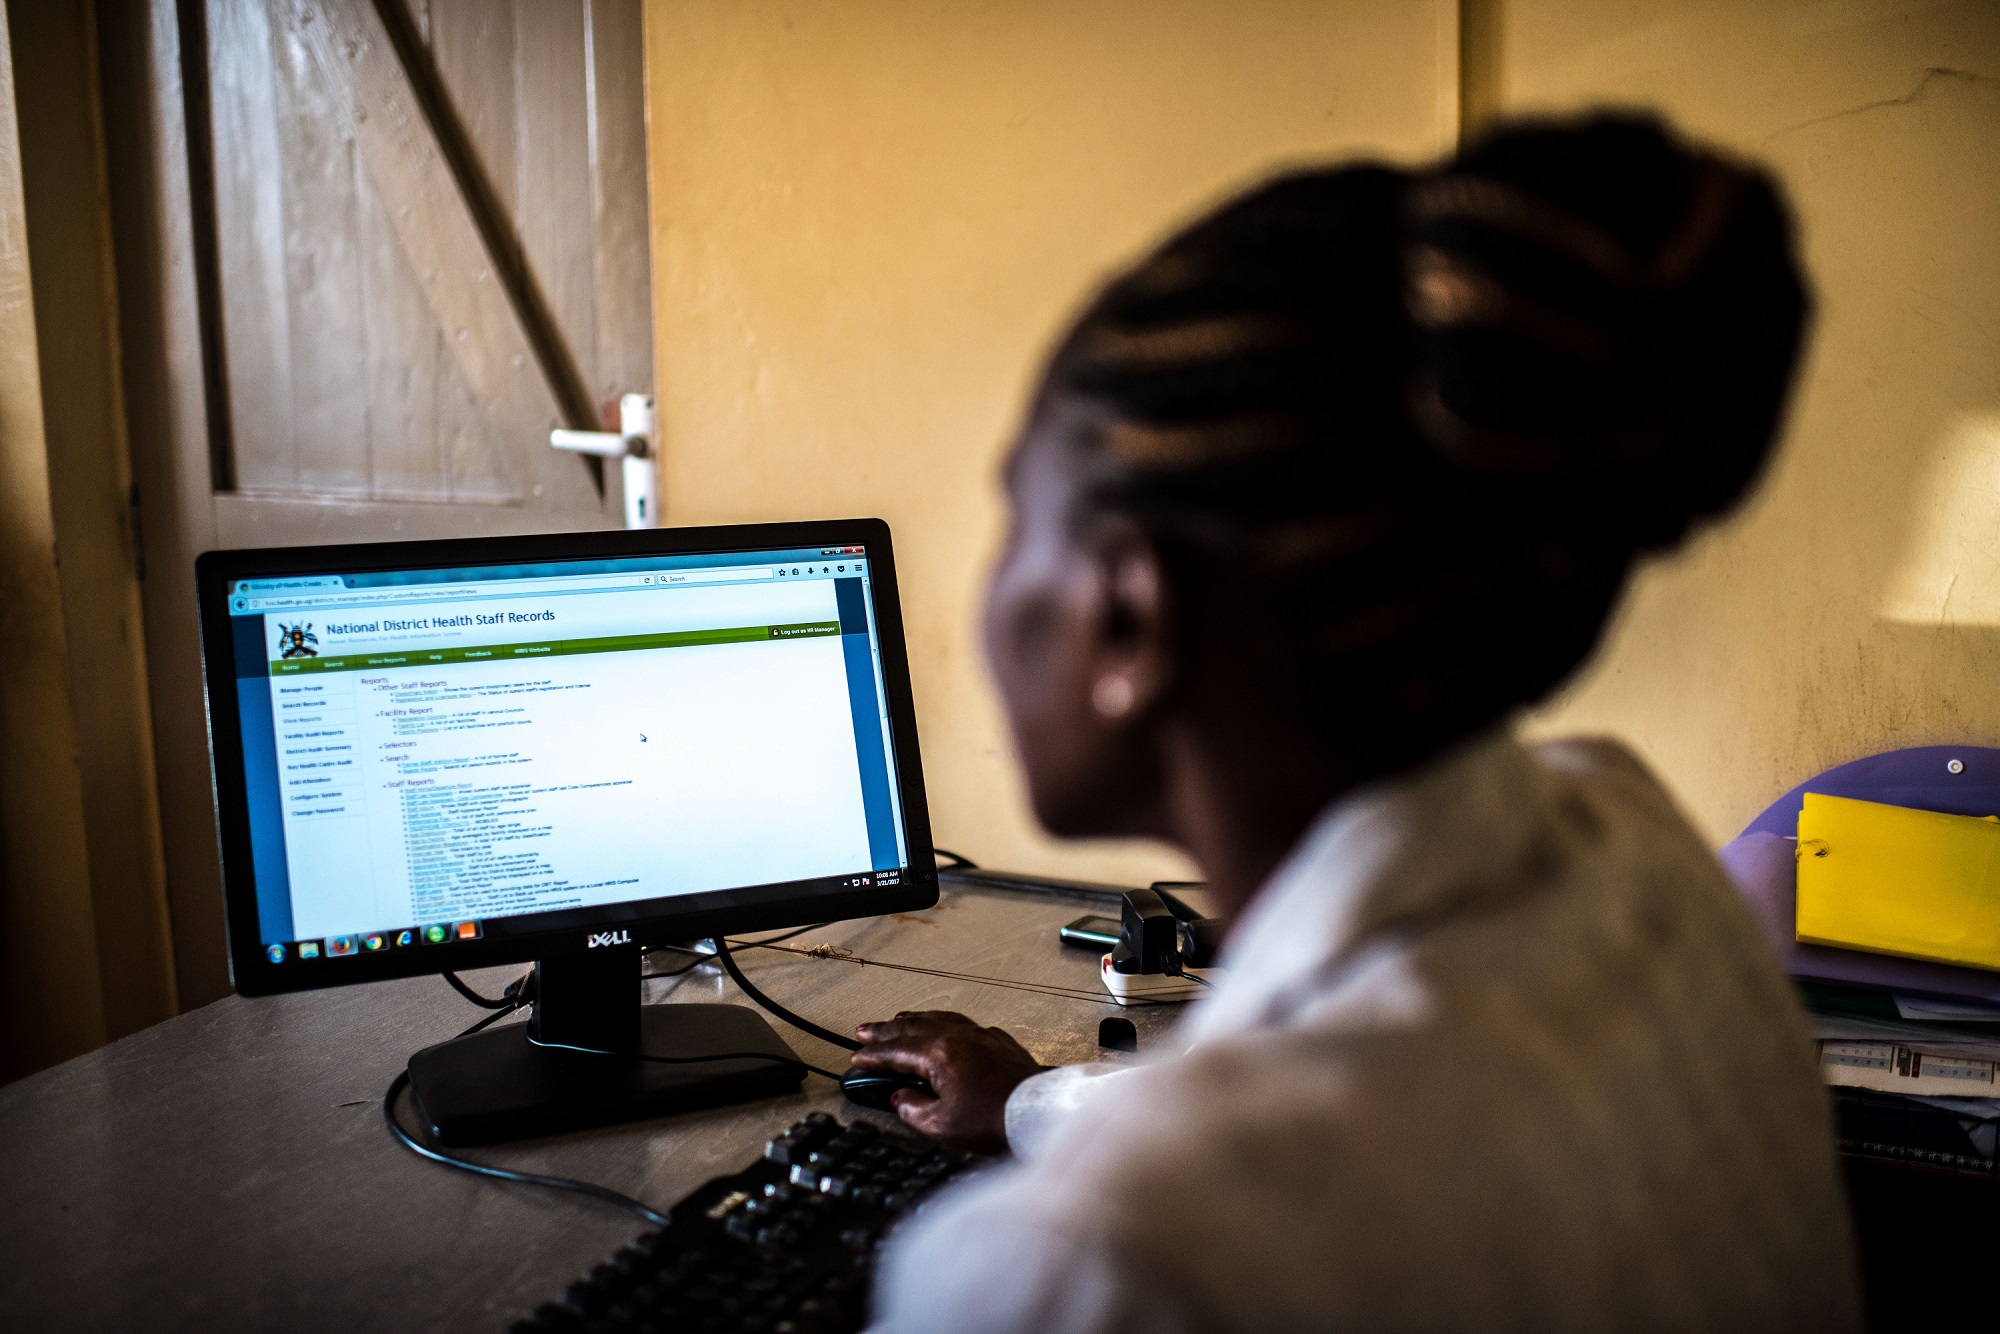 Health officials in Uganda use iHRIS to track health workforce data. Photo by Tommy Trenchard for IntraHealth International.